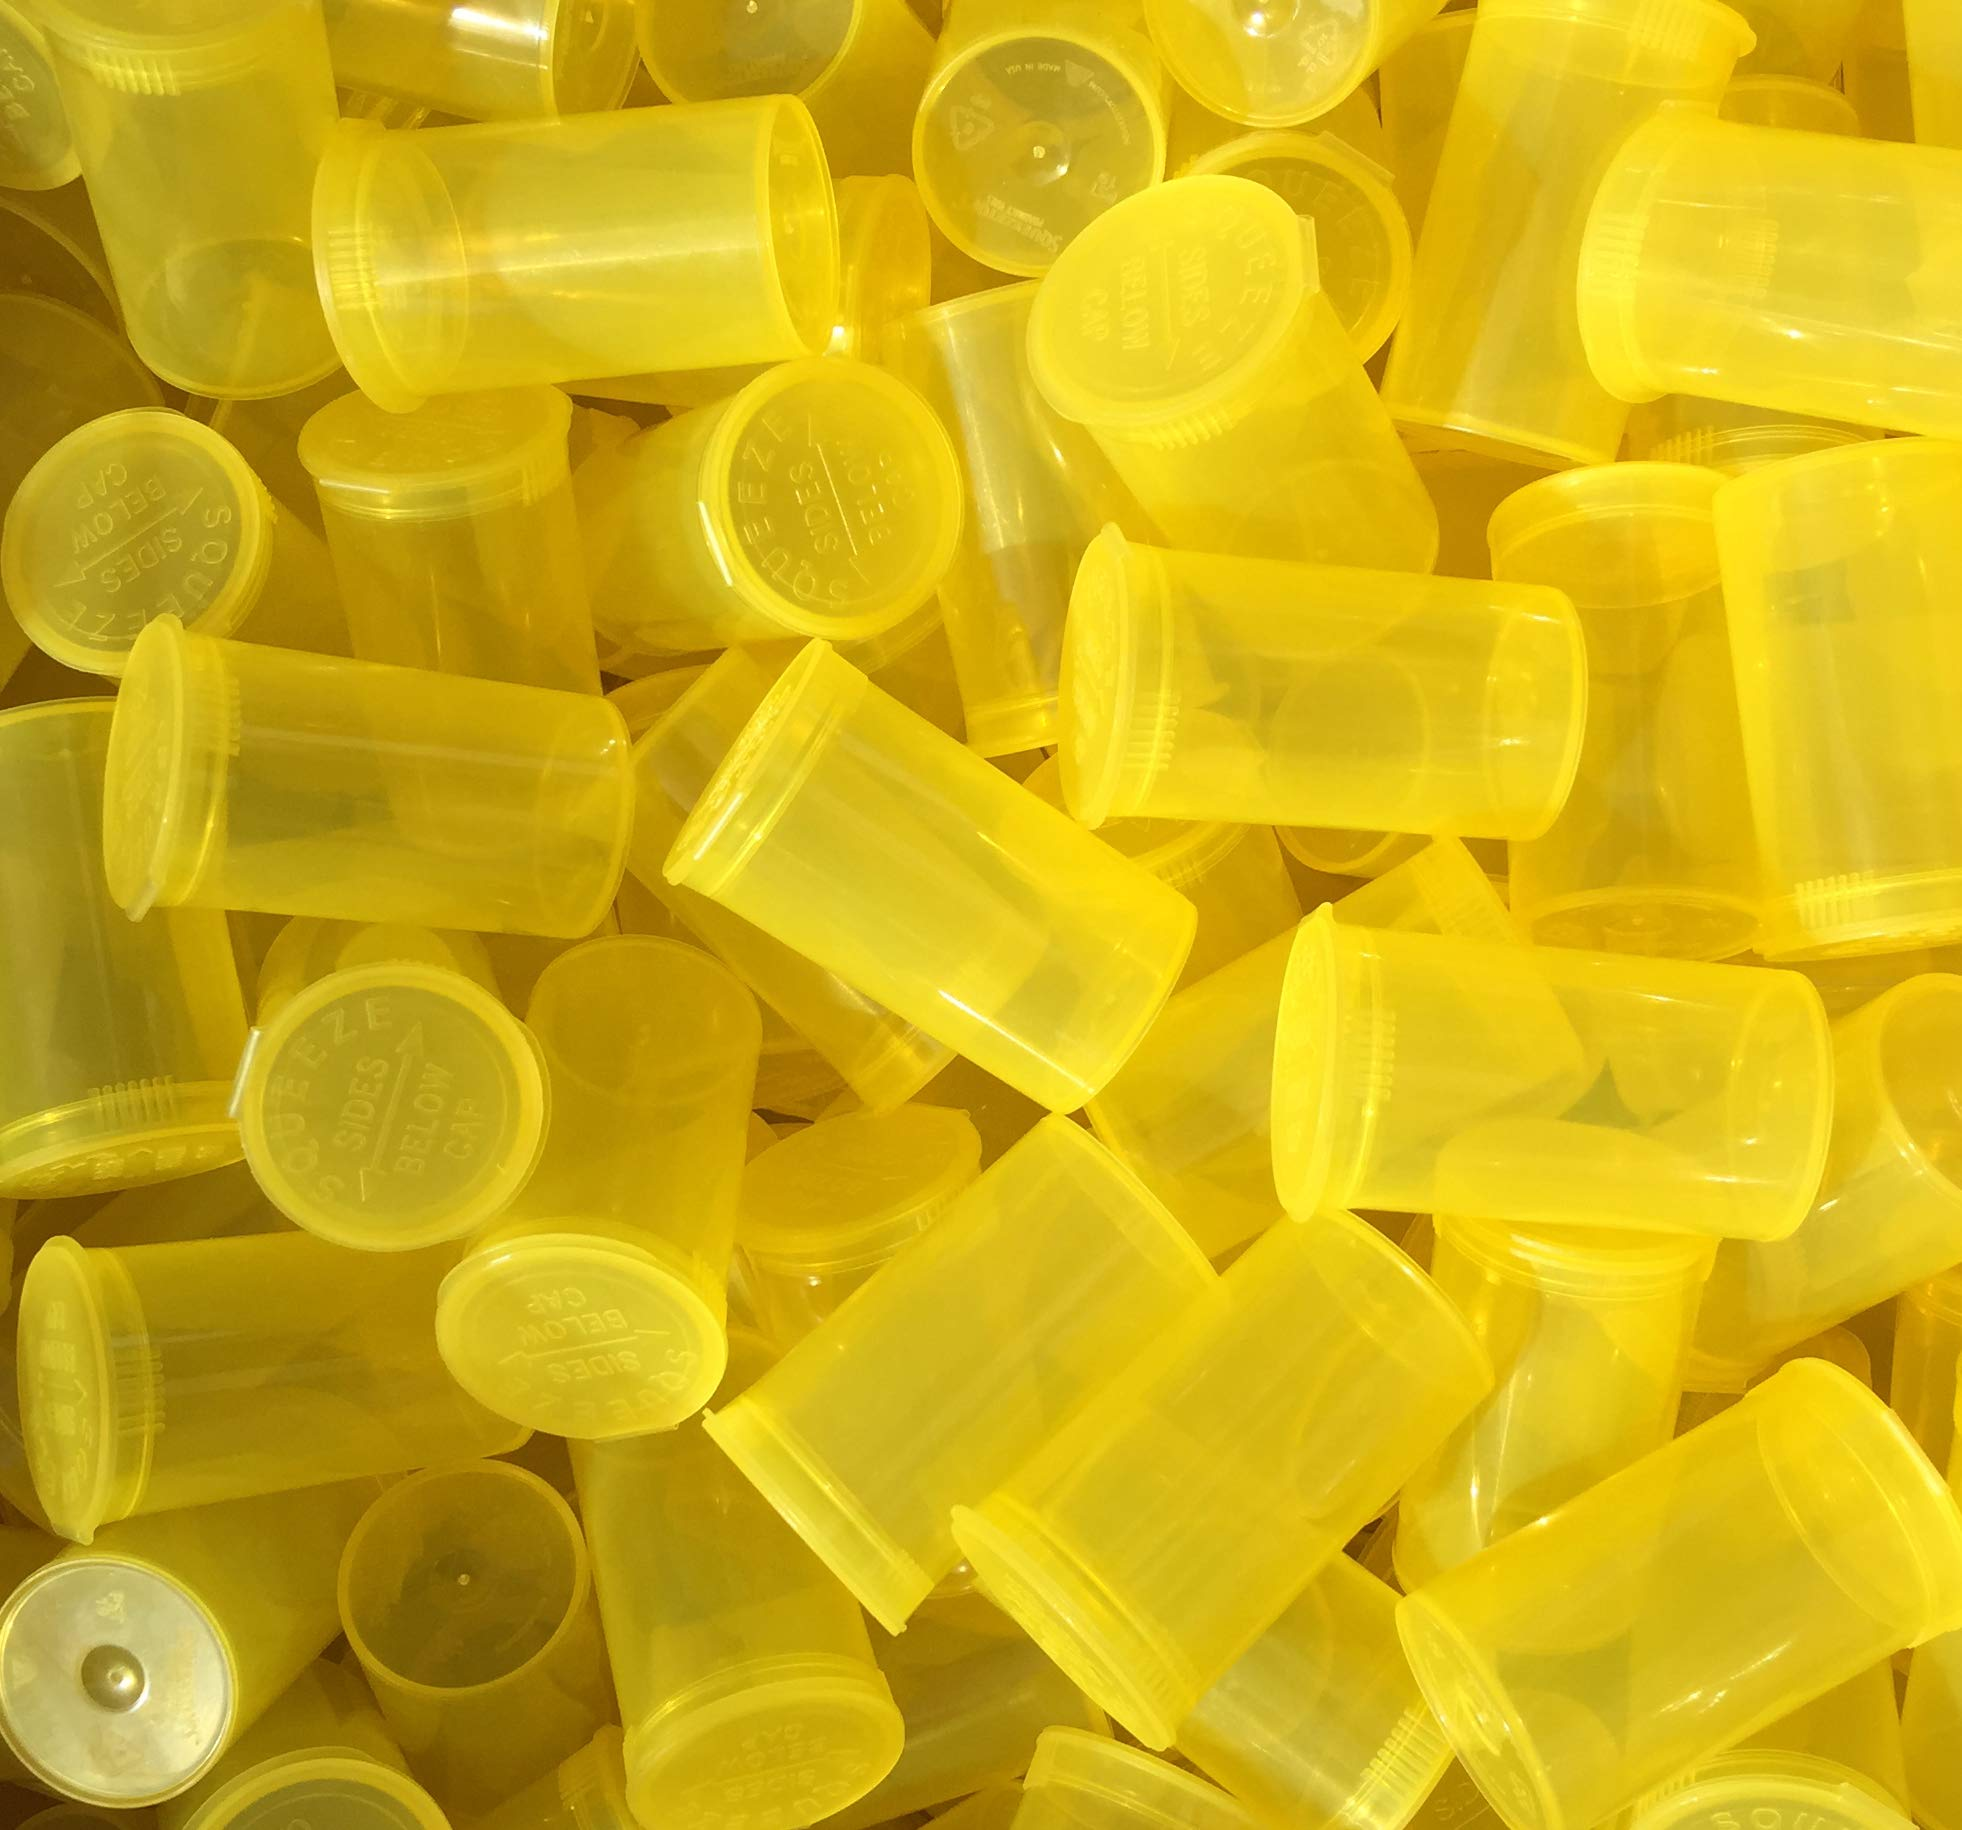 19 DRAM POP TOP Bottles Qty CASE Size Count Squeeze top Rx Pill Bottles Prescription Crafts Coins Storage Medicine 420 Containers Made in USA (50 PCS, Yellow - Transparent) by Squeezetops®